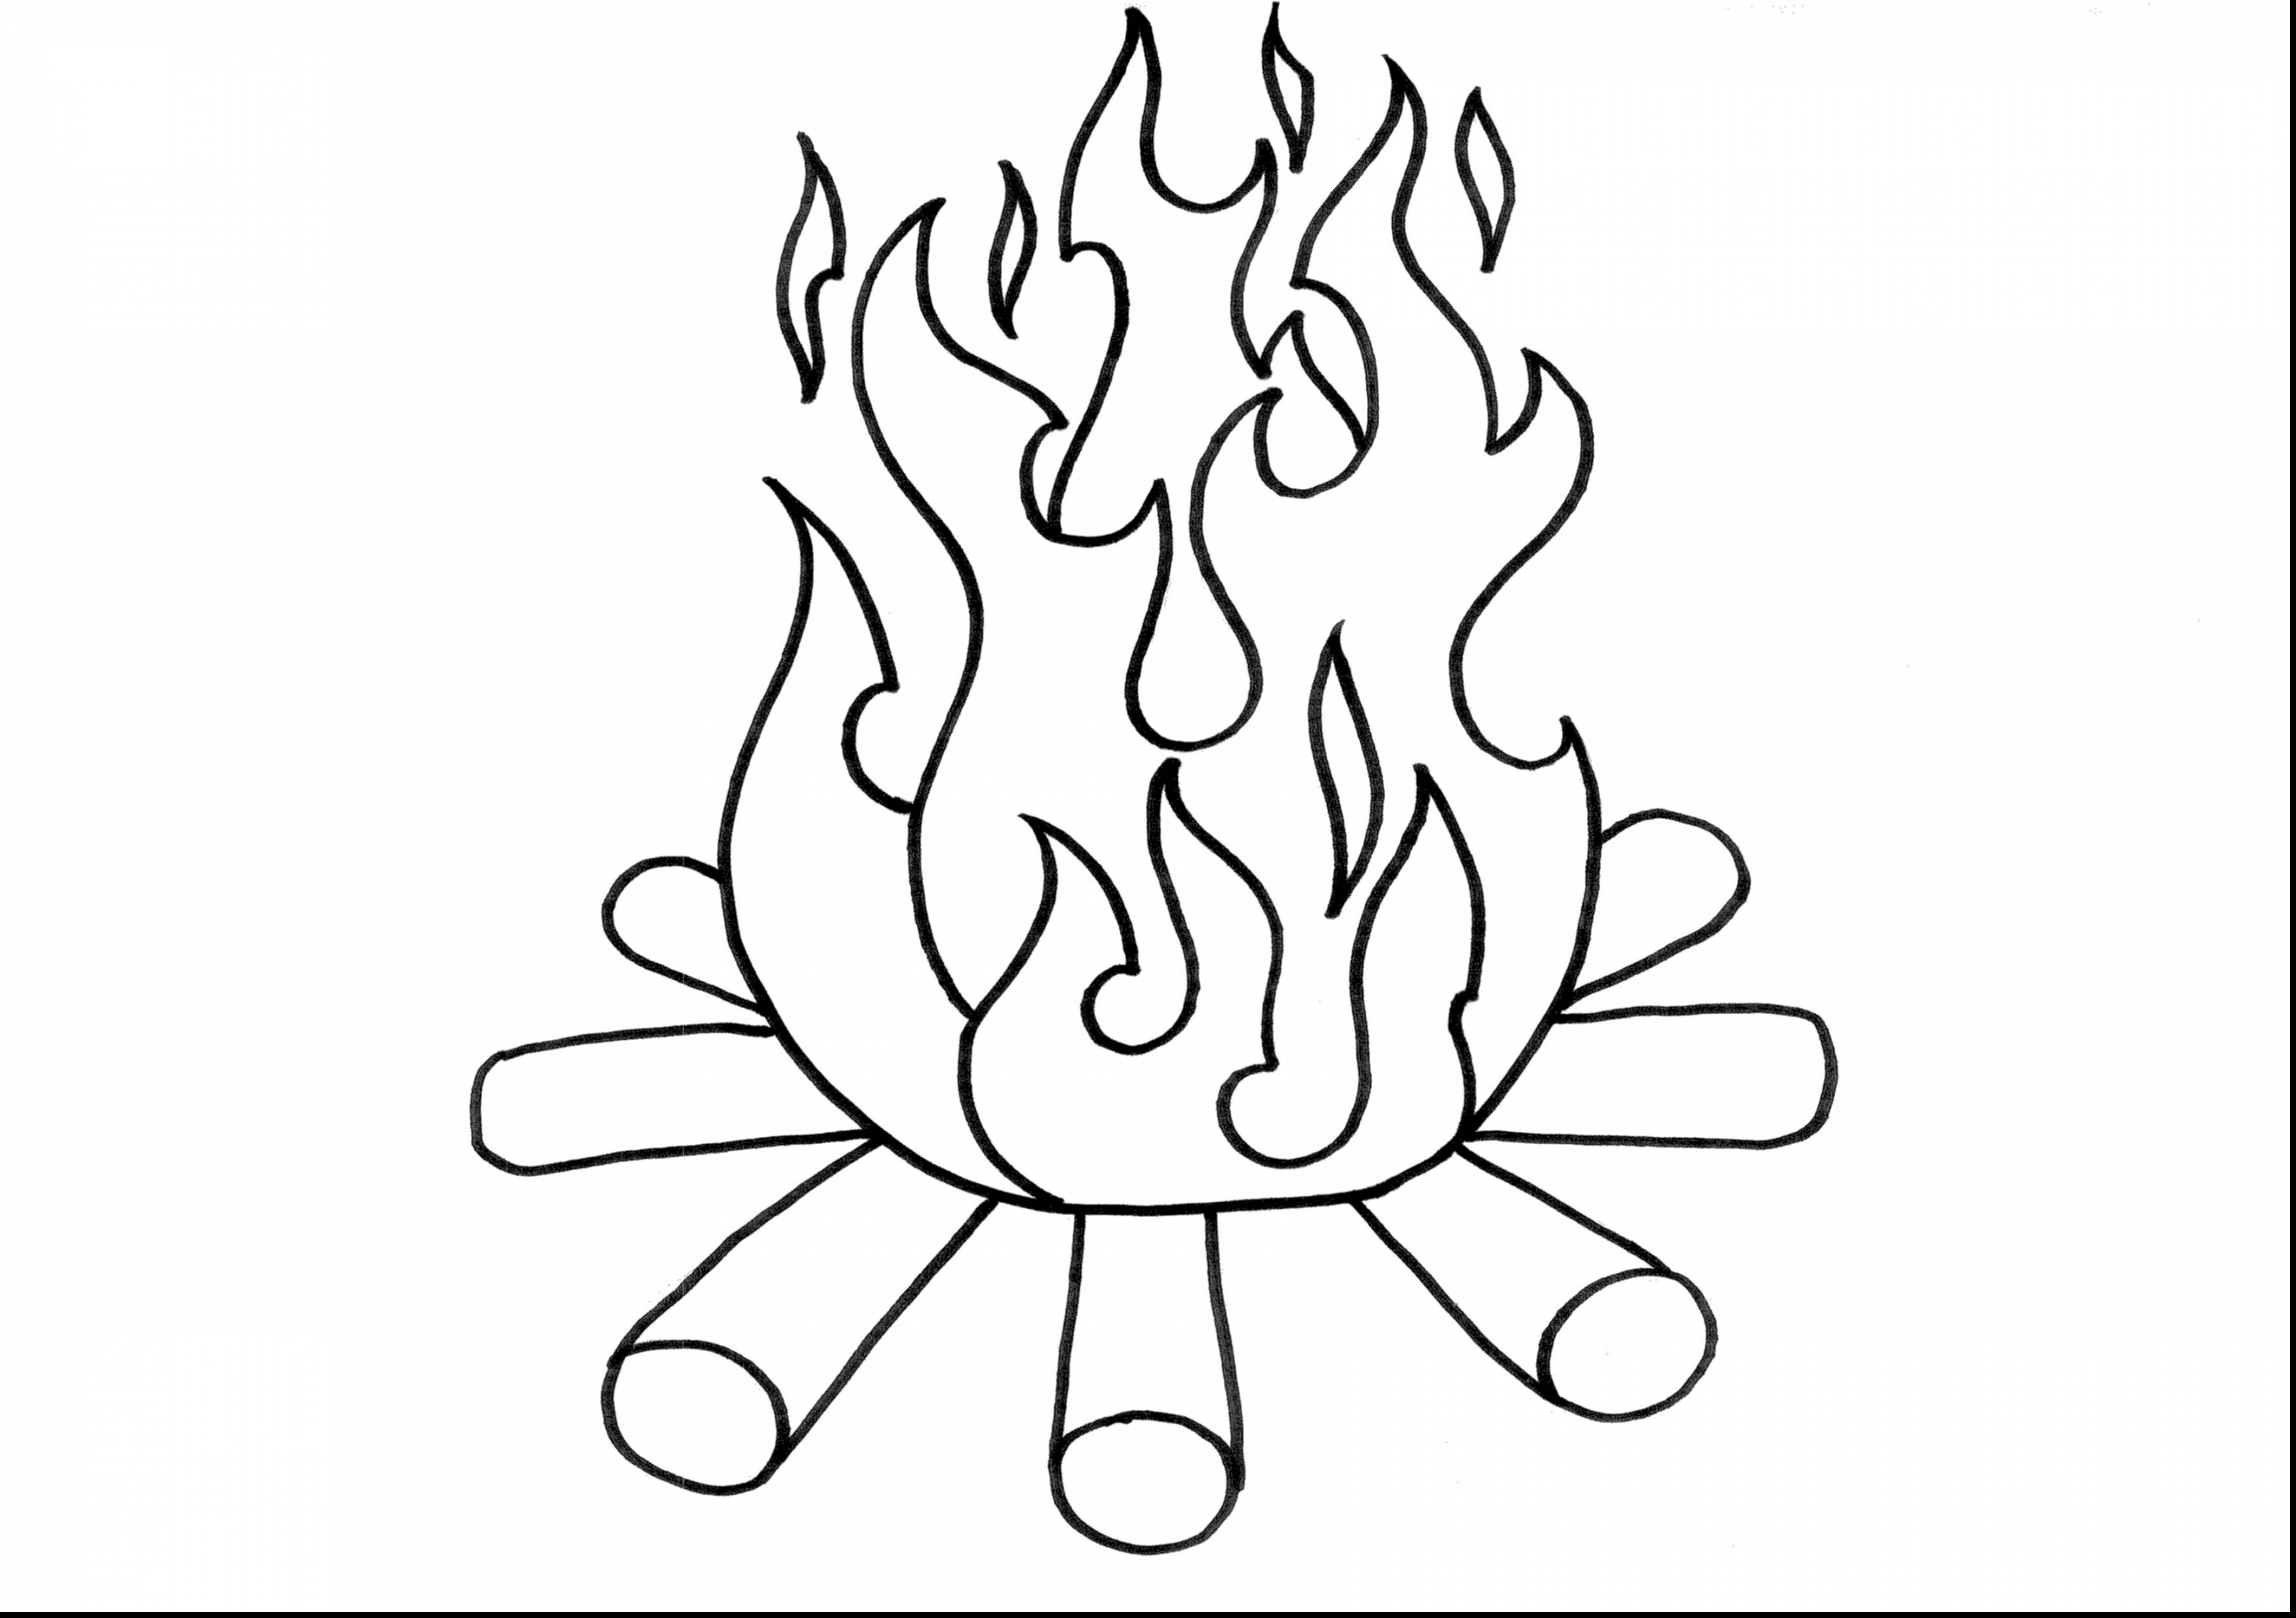 3872x2728 Fire Gear Coloring Pages Free Draw To Color